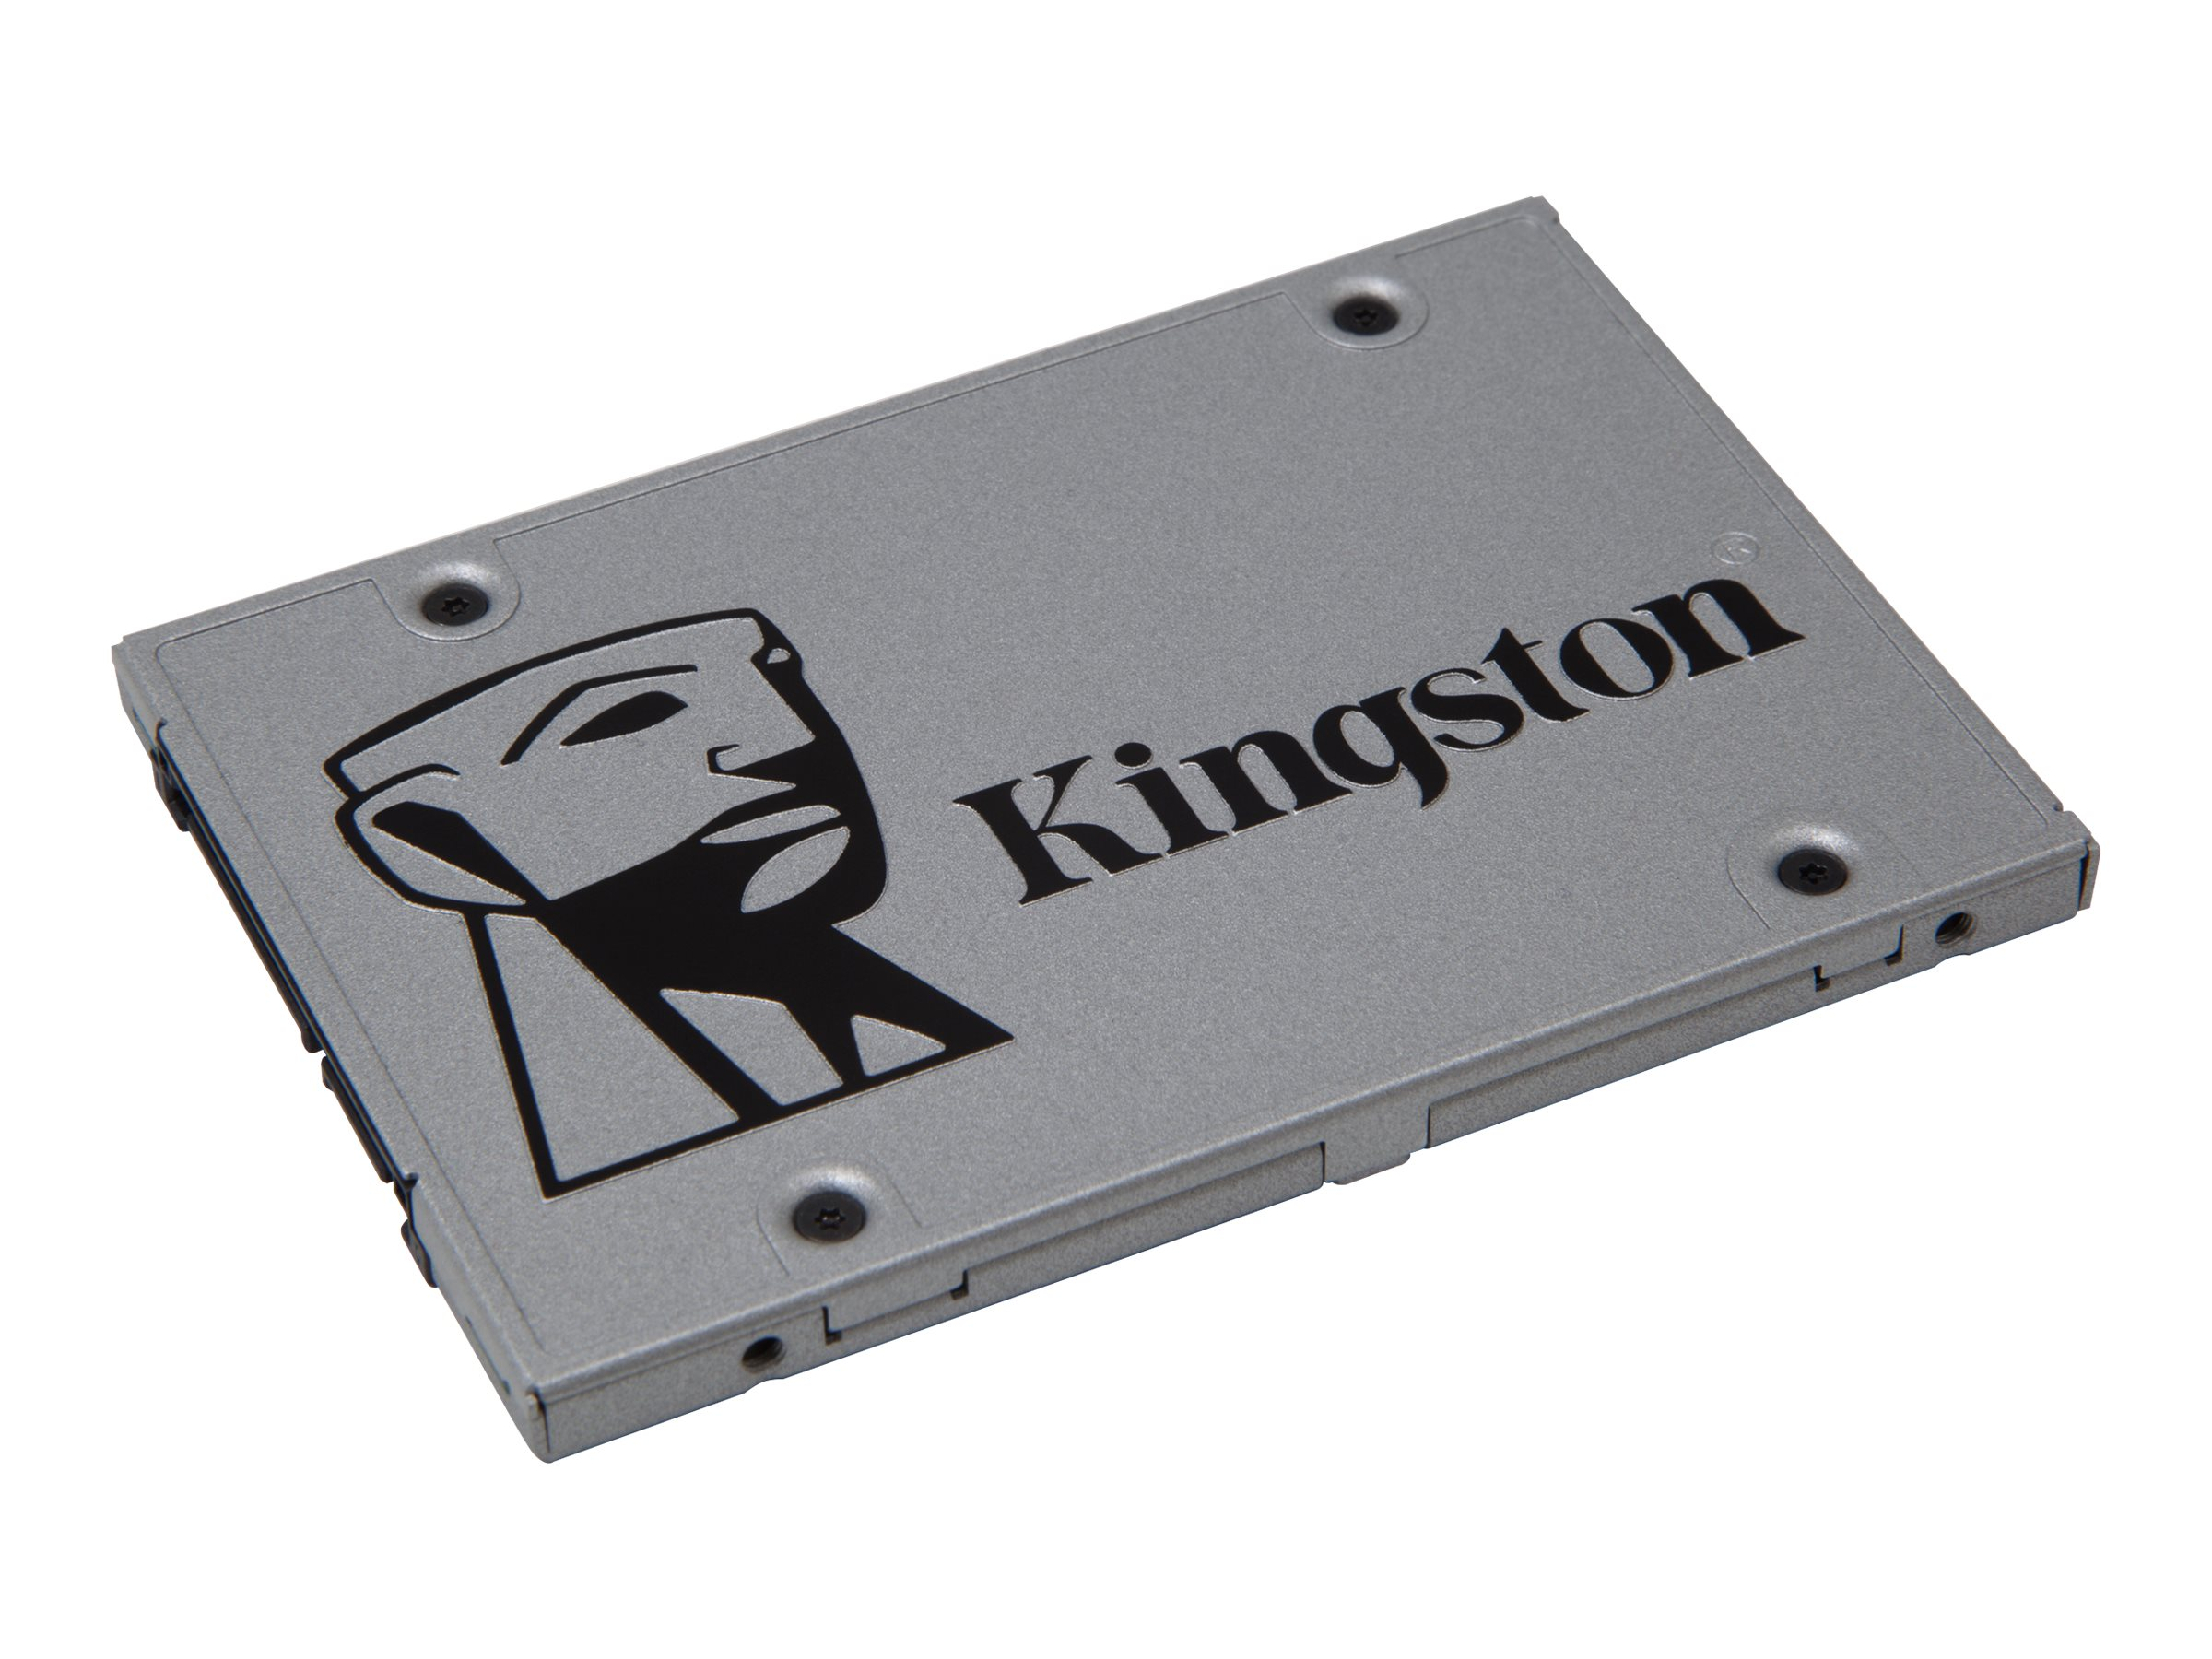 Kingston SUV400S37/240G Image 1